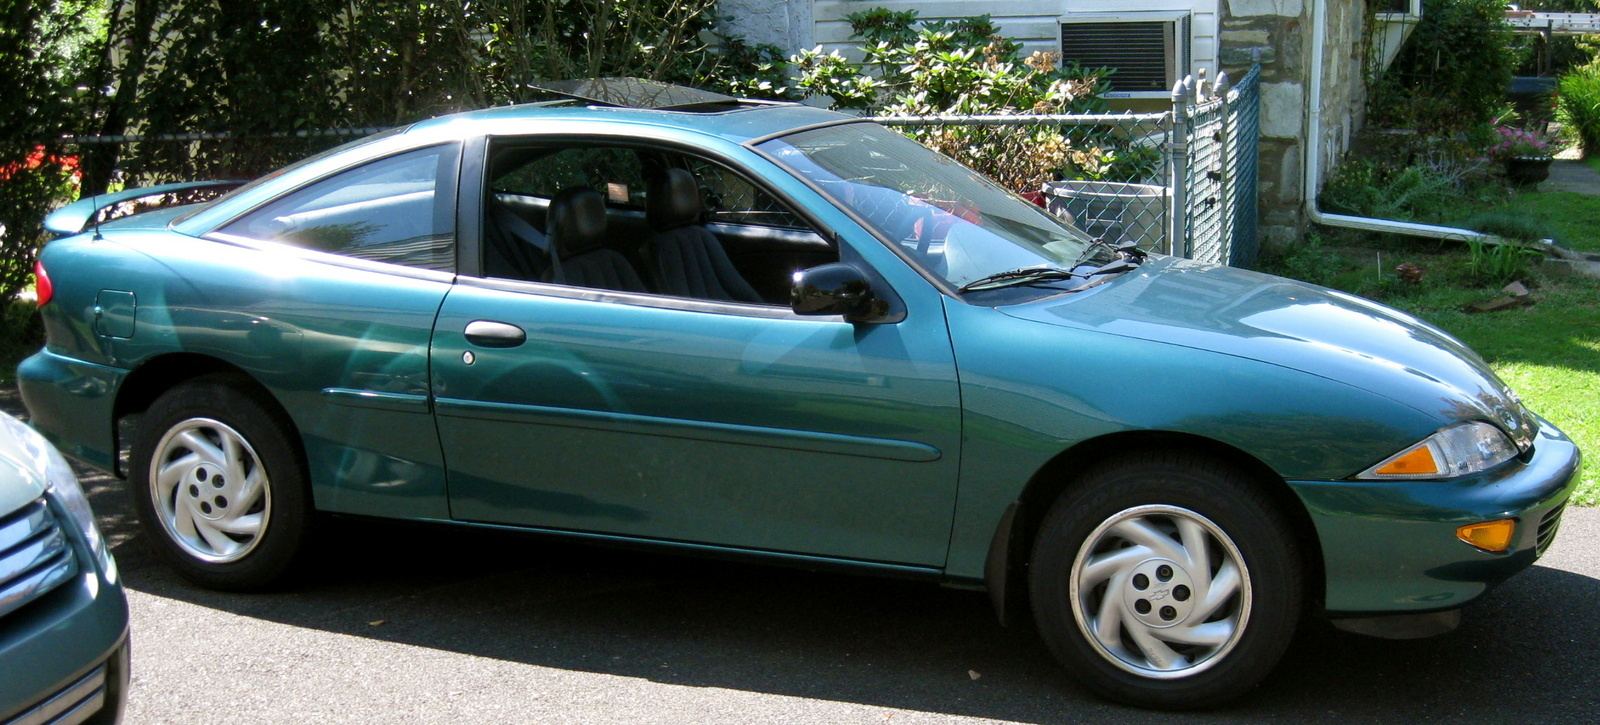 Chevrolet Cavalier Questions What S The Trim Of My Car Cargurus